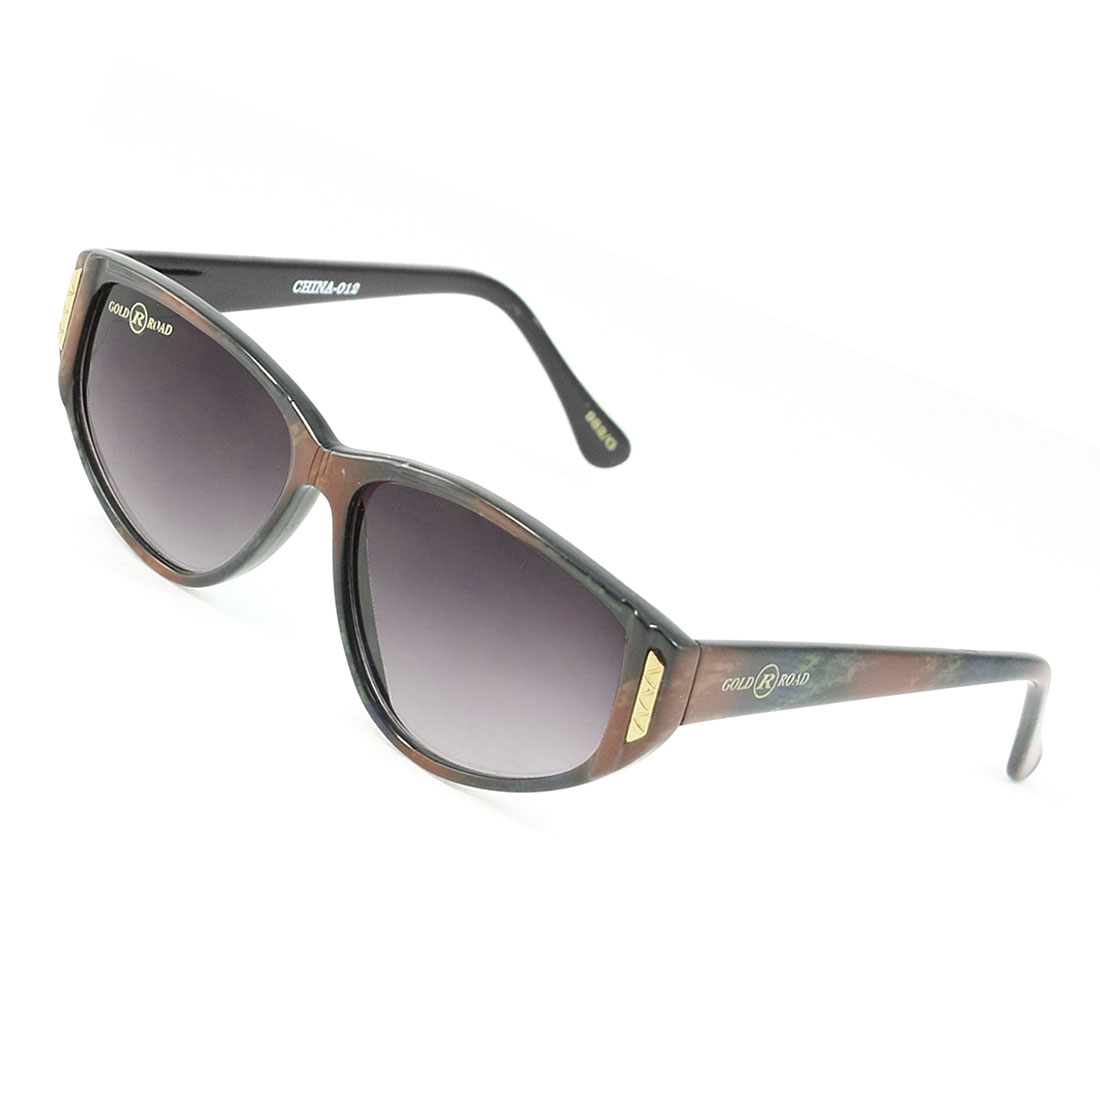 Outdoor Colored Teardrop Lens Painted Full Frame Sunglasses for Women